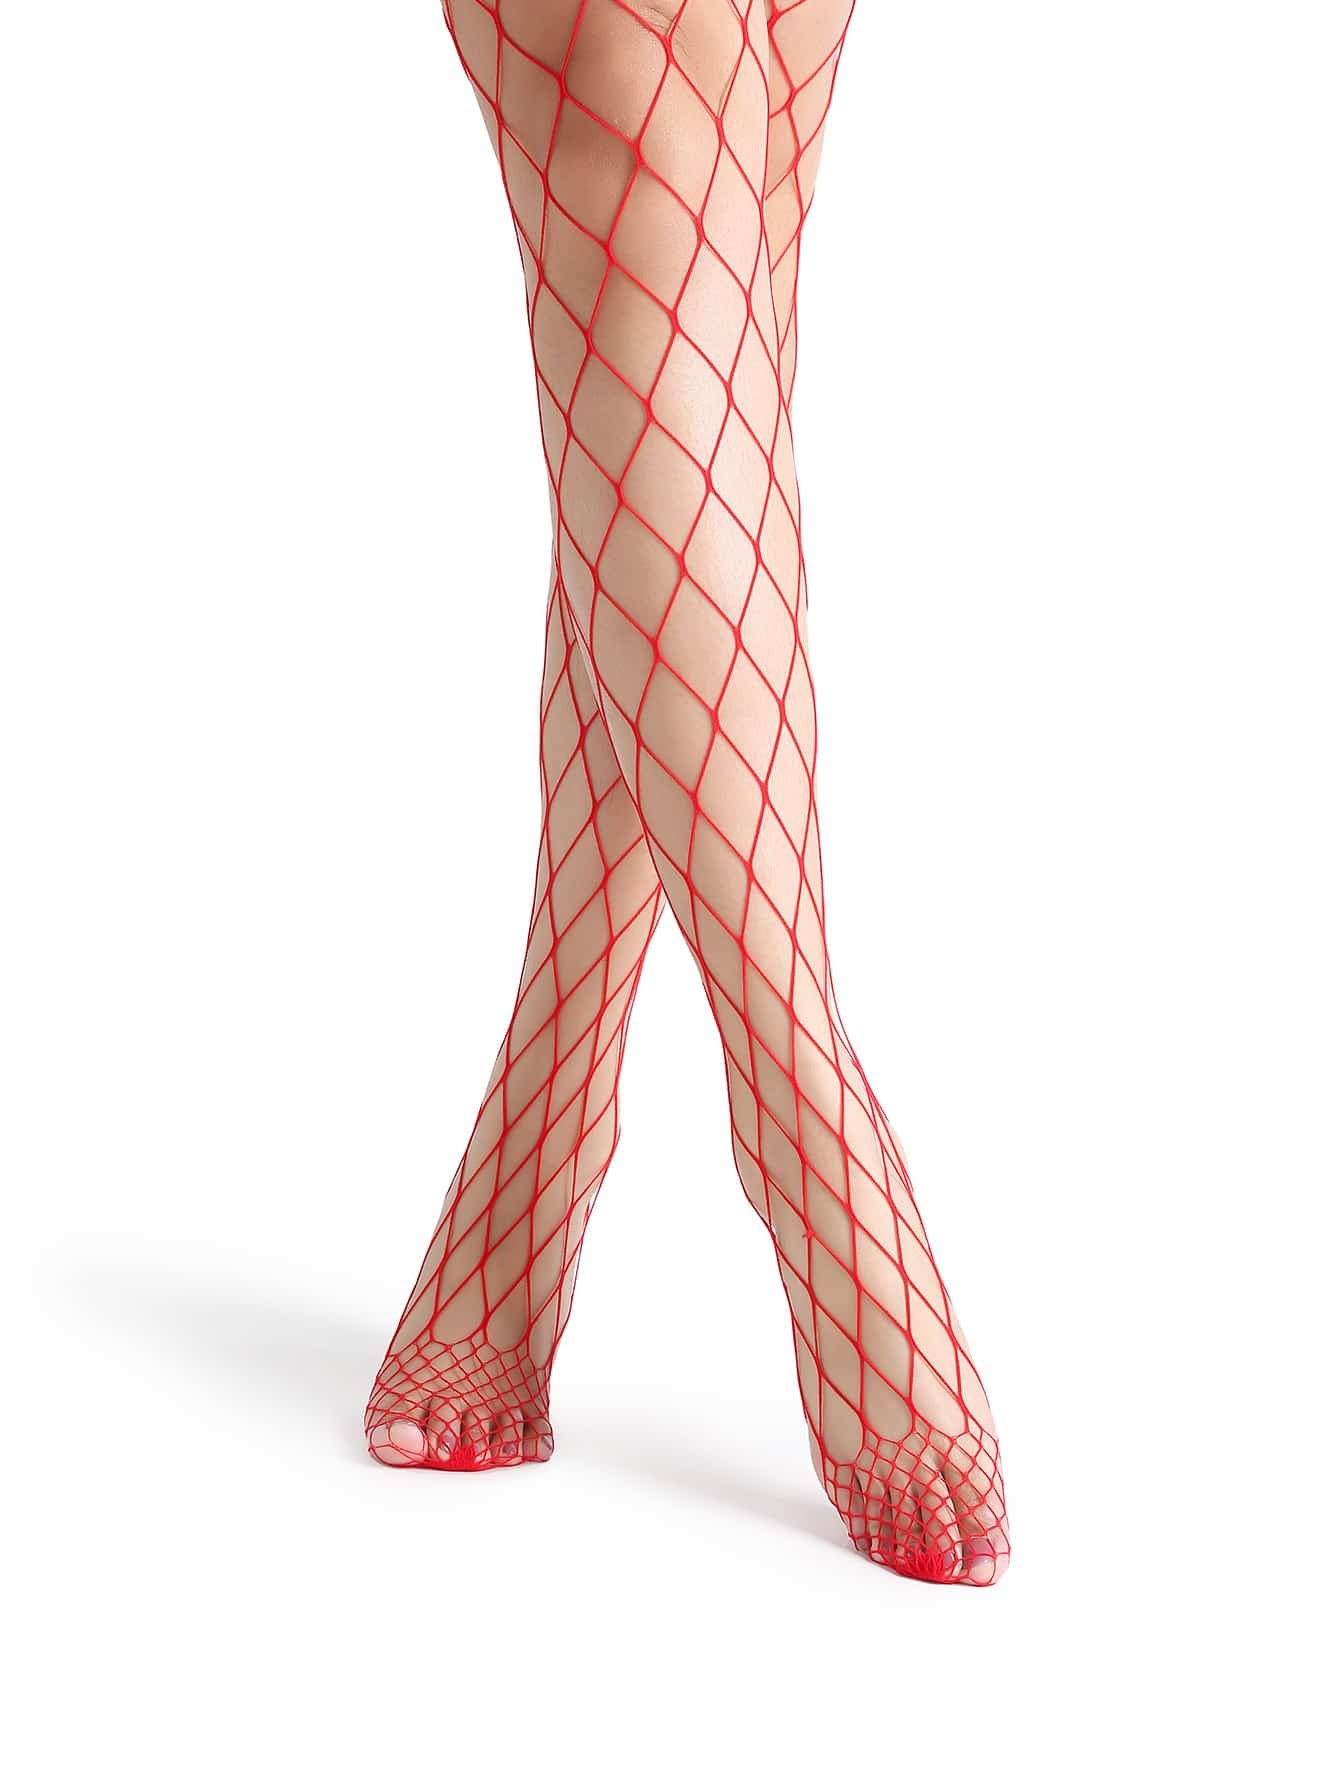 Red Sexy Fishnet Stockings 2015 new women sexy fishnet stockings fishnet pantyhose ladies mesh lingerie for female tights